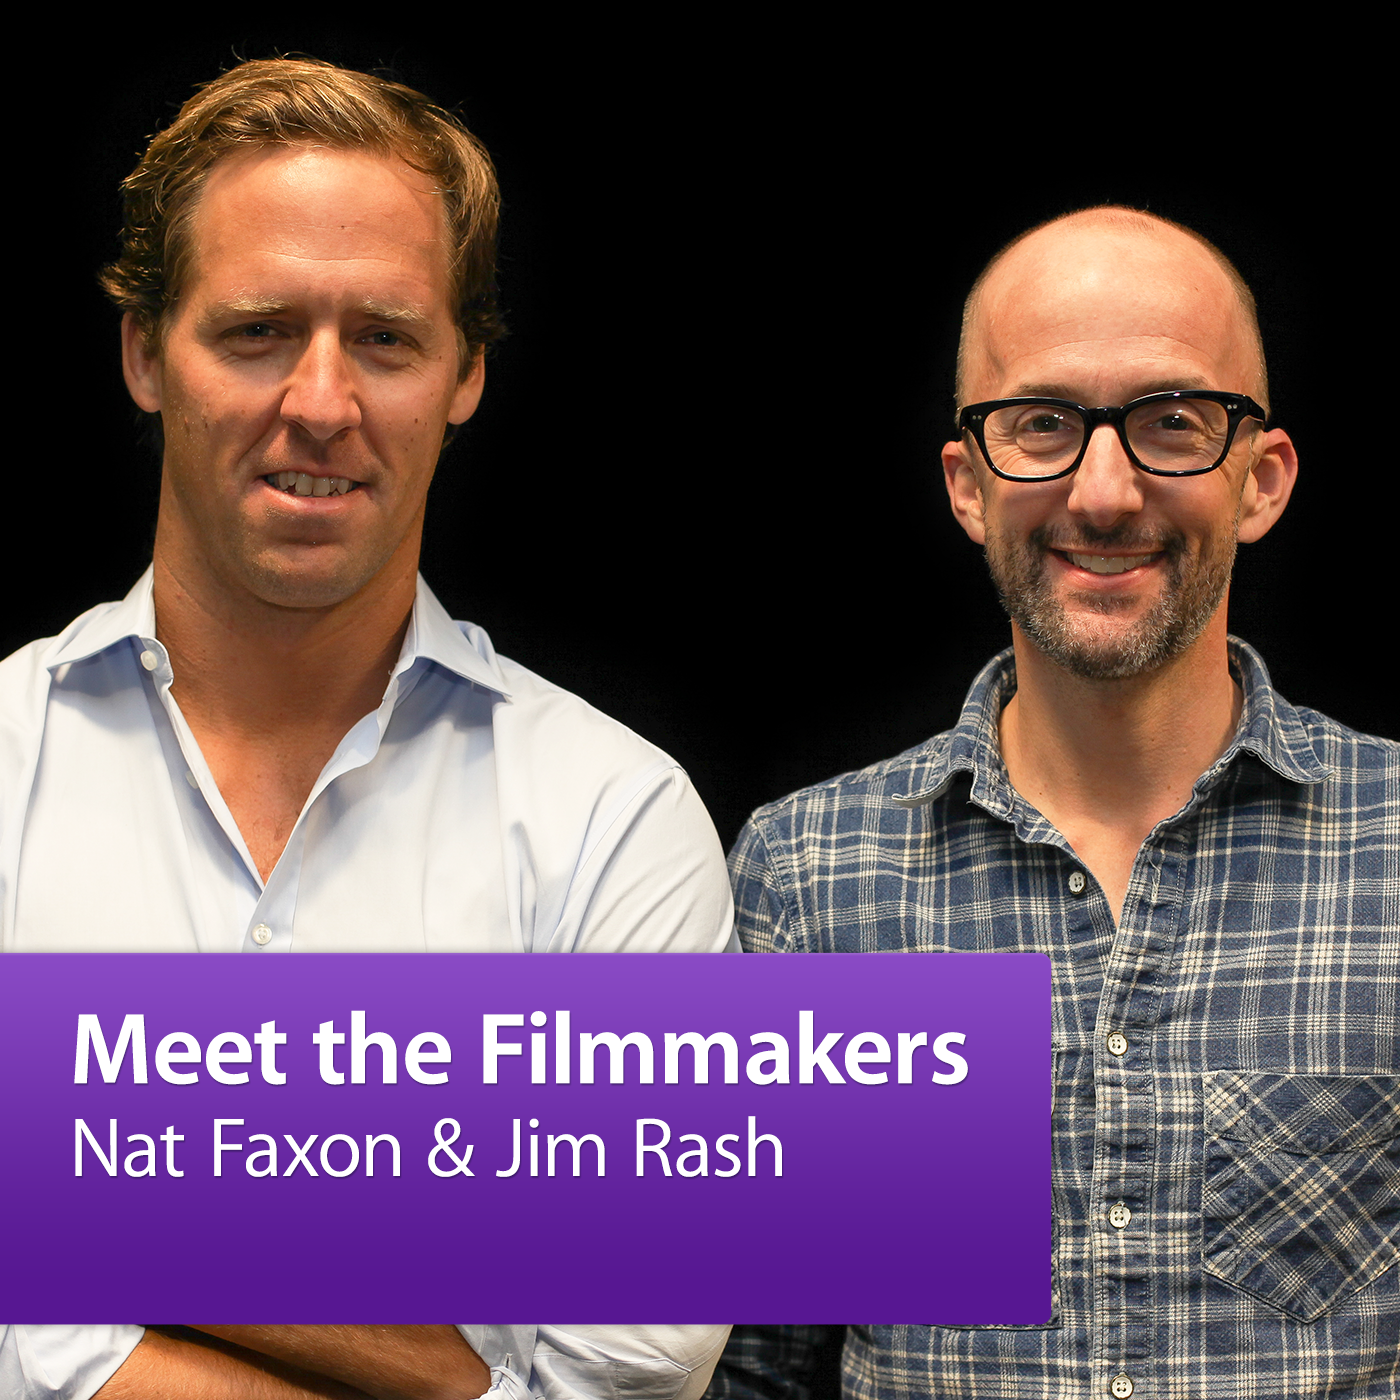 Nat Faxon and Jim Rash: Meet The Filmmakers